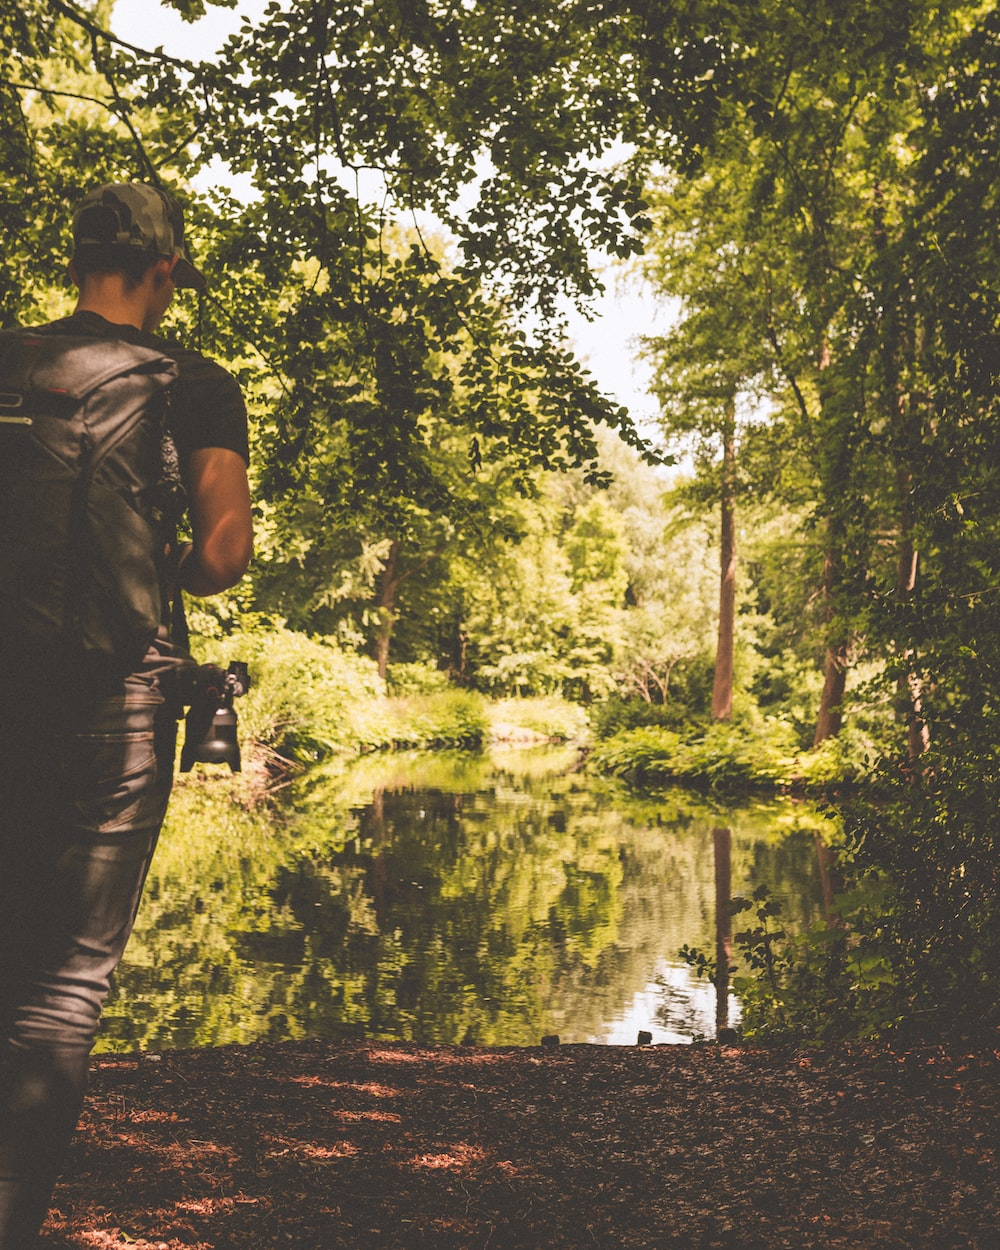 man standing near body of water surrounded by trees